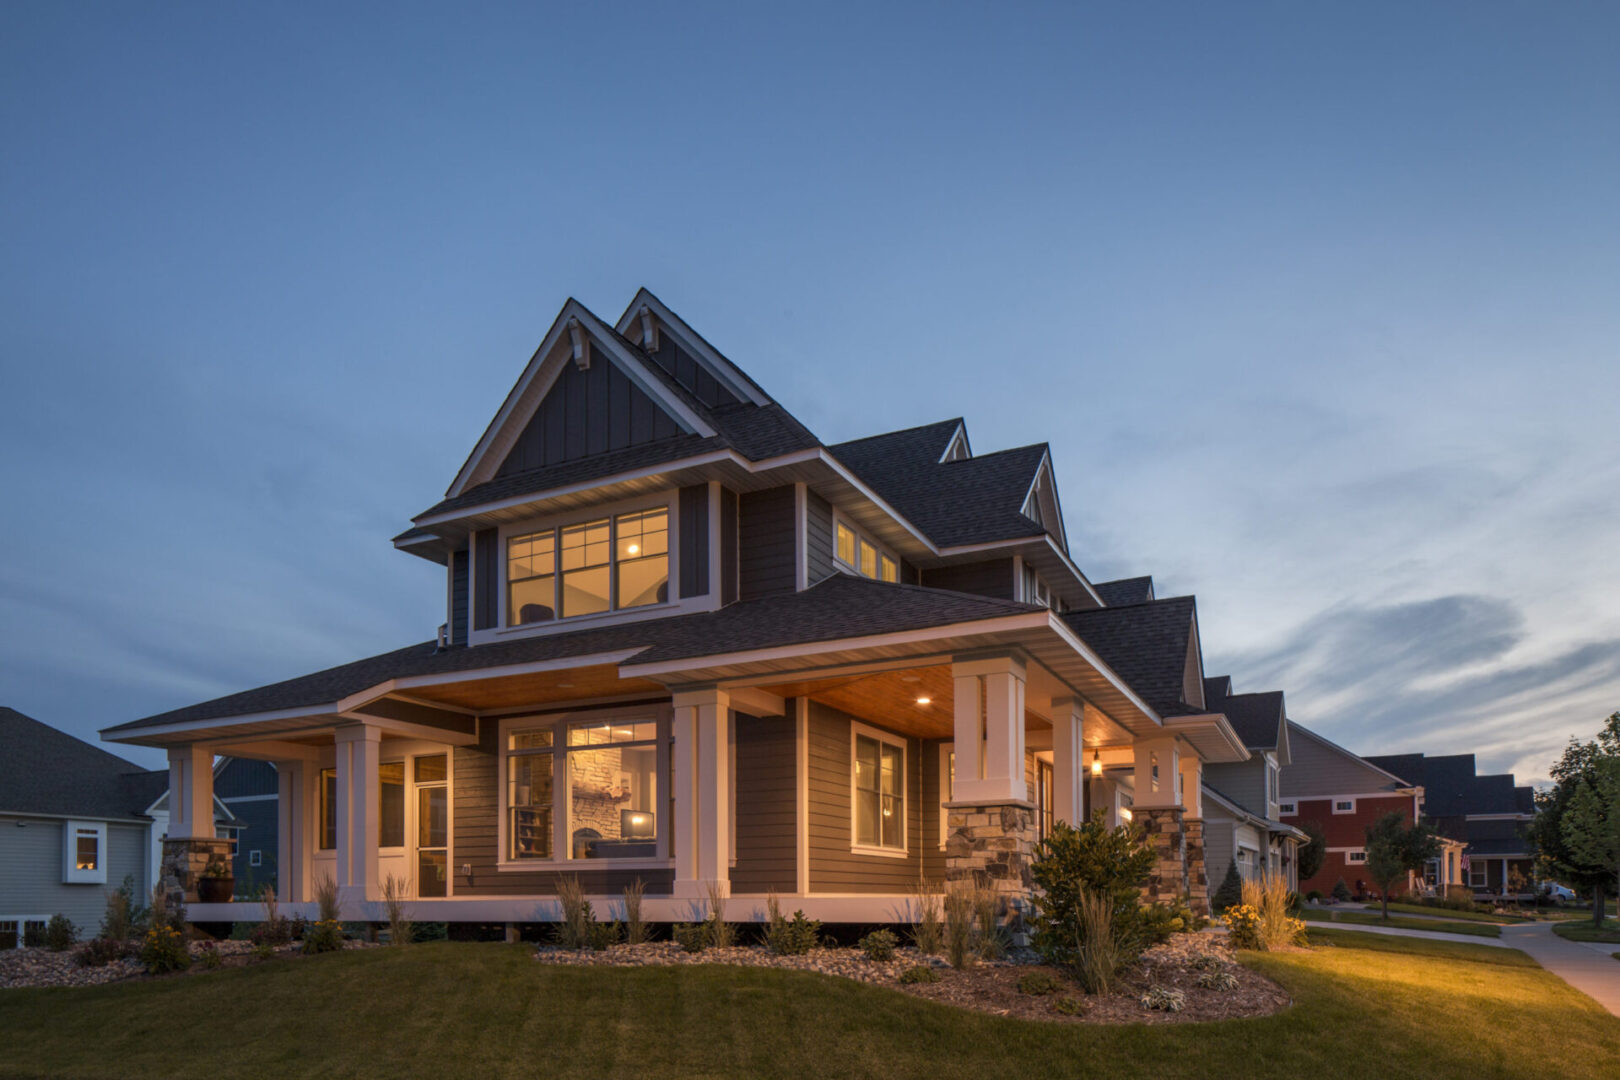 LP_Assets_HighRes High res - grey house with large porch, night view 2 - DOWNLOAD OR SHARE